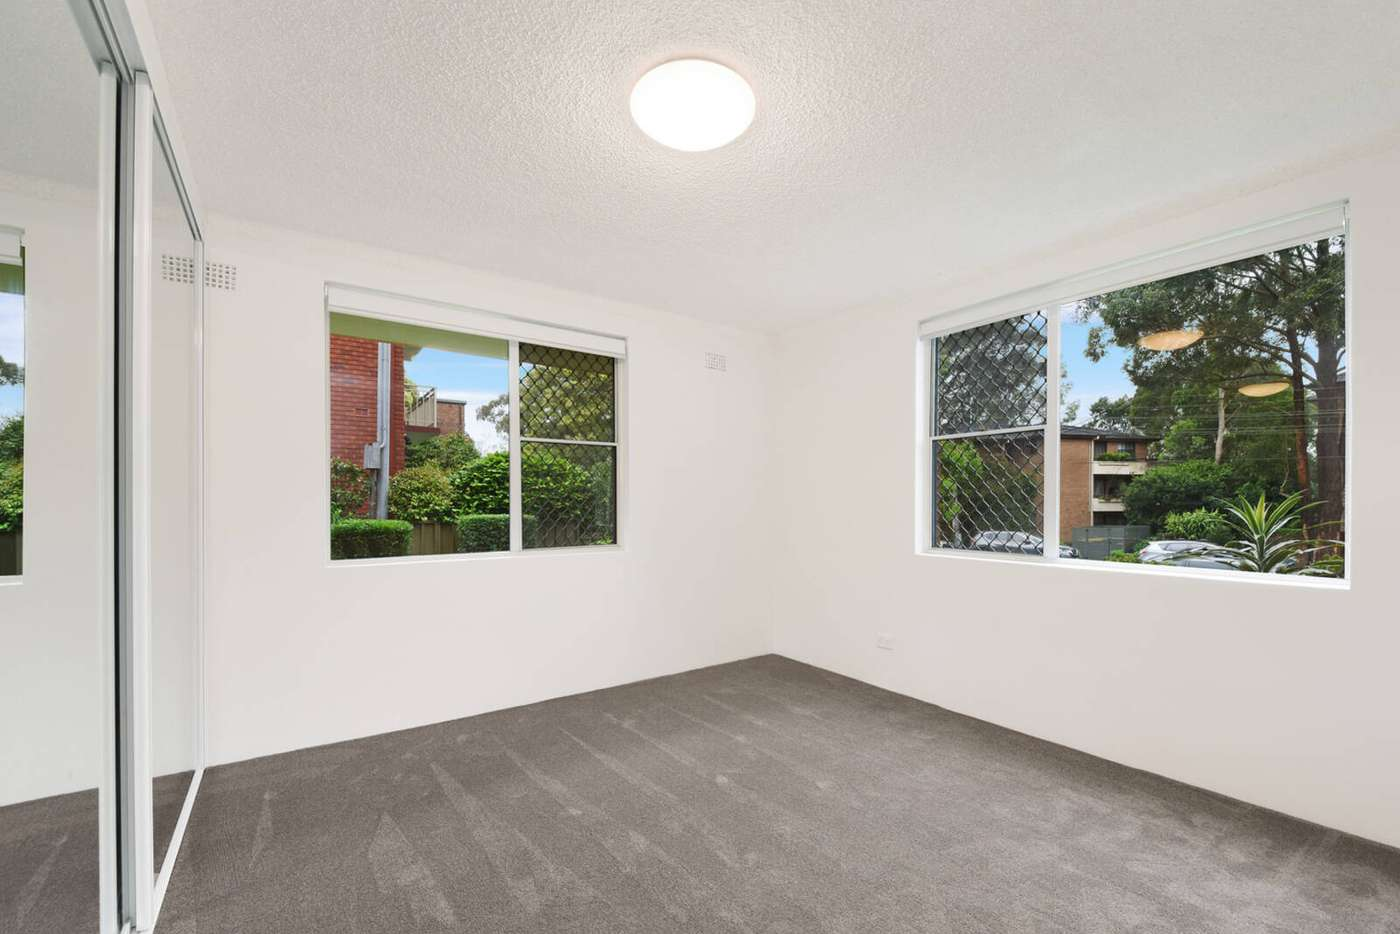 Sixth view of Homely unit listing, 1/5 Muriel Street, Hornsby NSW 2077